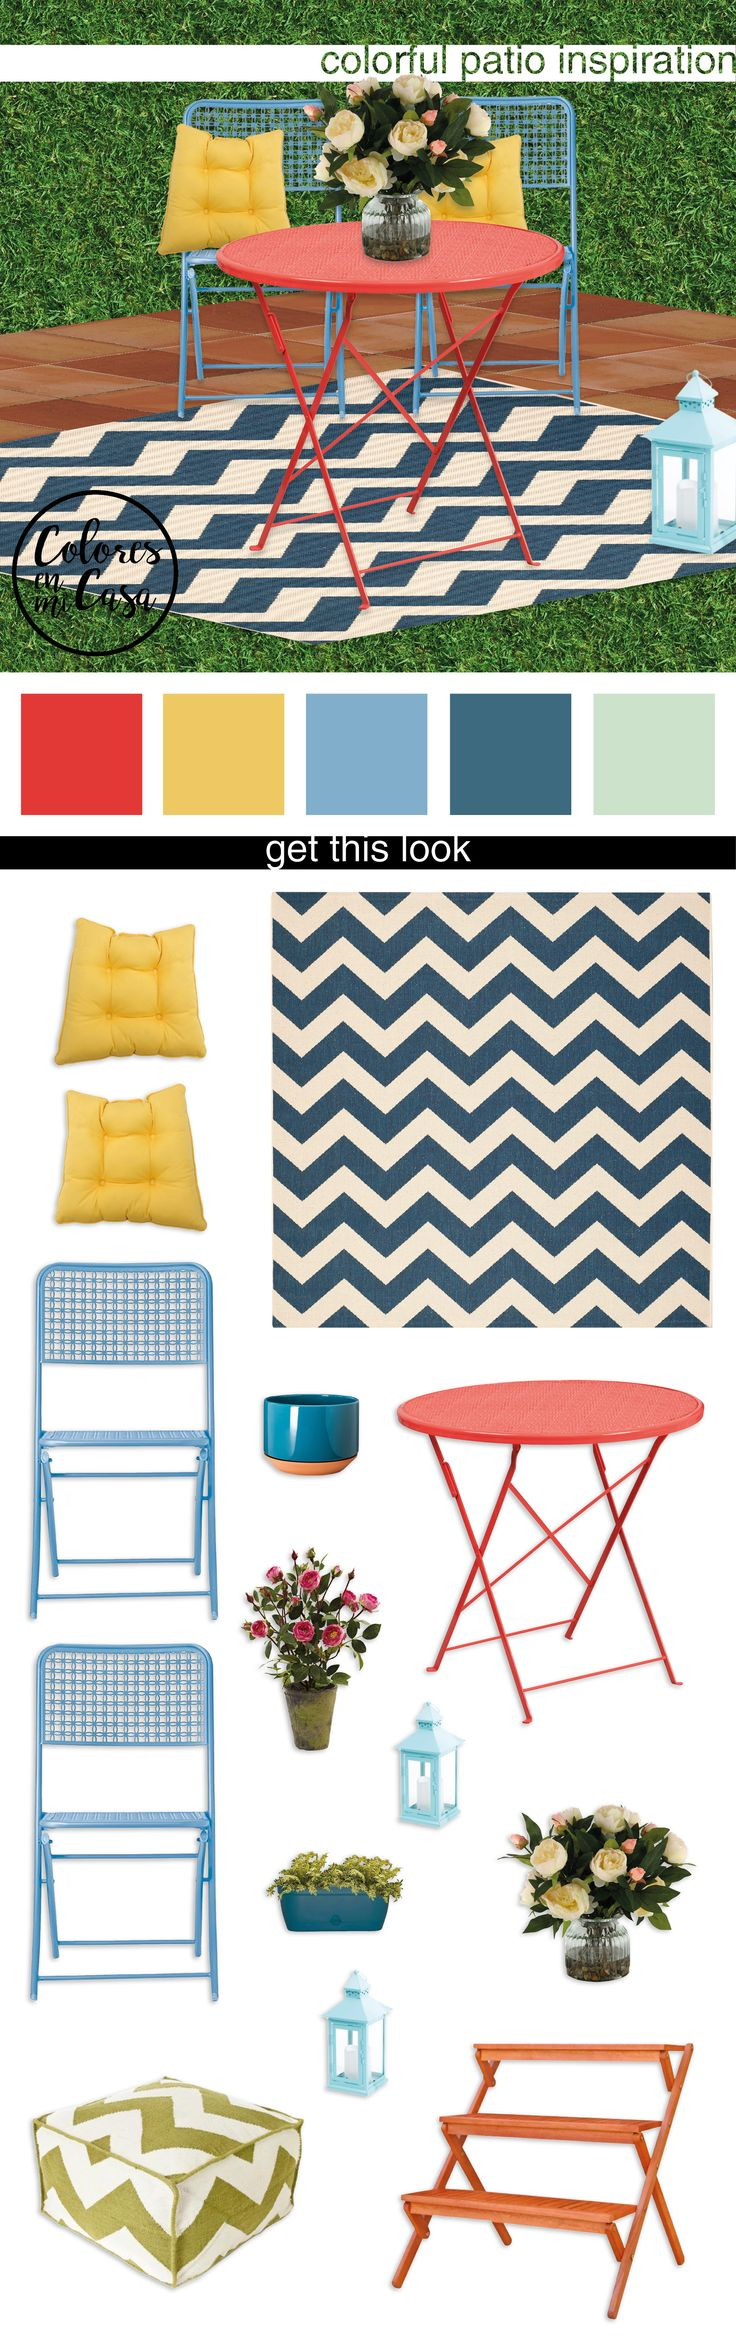 Colores | Colorful Patio Inspiration | Get this look: Metal Punch Bistro Chair - Brand: Room Essentials // Courtyard Chevron Indoor/Outdoor Rug - Brand: Safavieh // Red Bistro Table - Brand: Flash Furniture // Primrose Yellow Outdoor Seat Cushion - Brand: Nordstrom Rack // Cream Peonies in Glass Planter - Brand: D&W Silks //  | follow us on pinterest for more home decor ideas  ♥ coloresenmicasa | #colores #coloresenmicasa #micasa #decor  #decorate  #decorating  #decoratingideas…